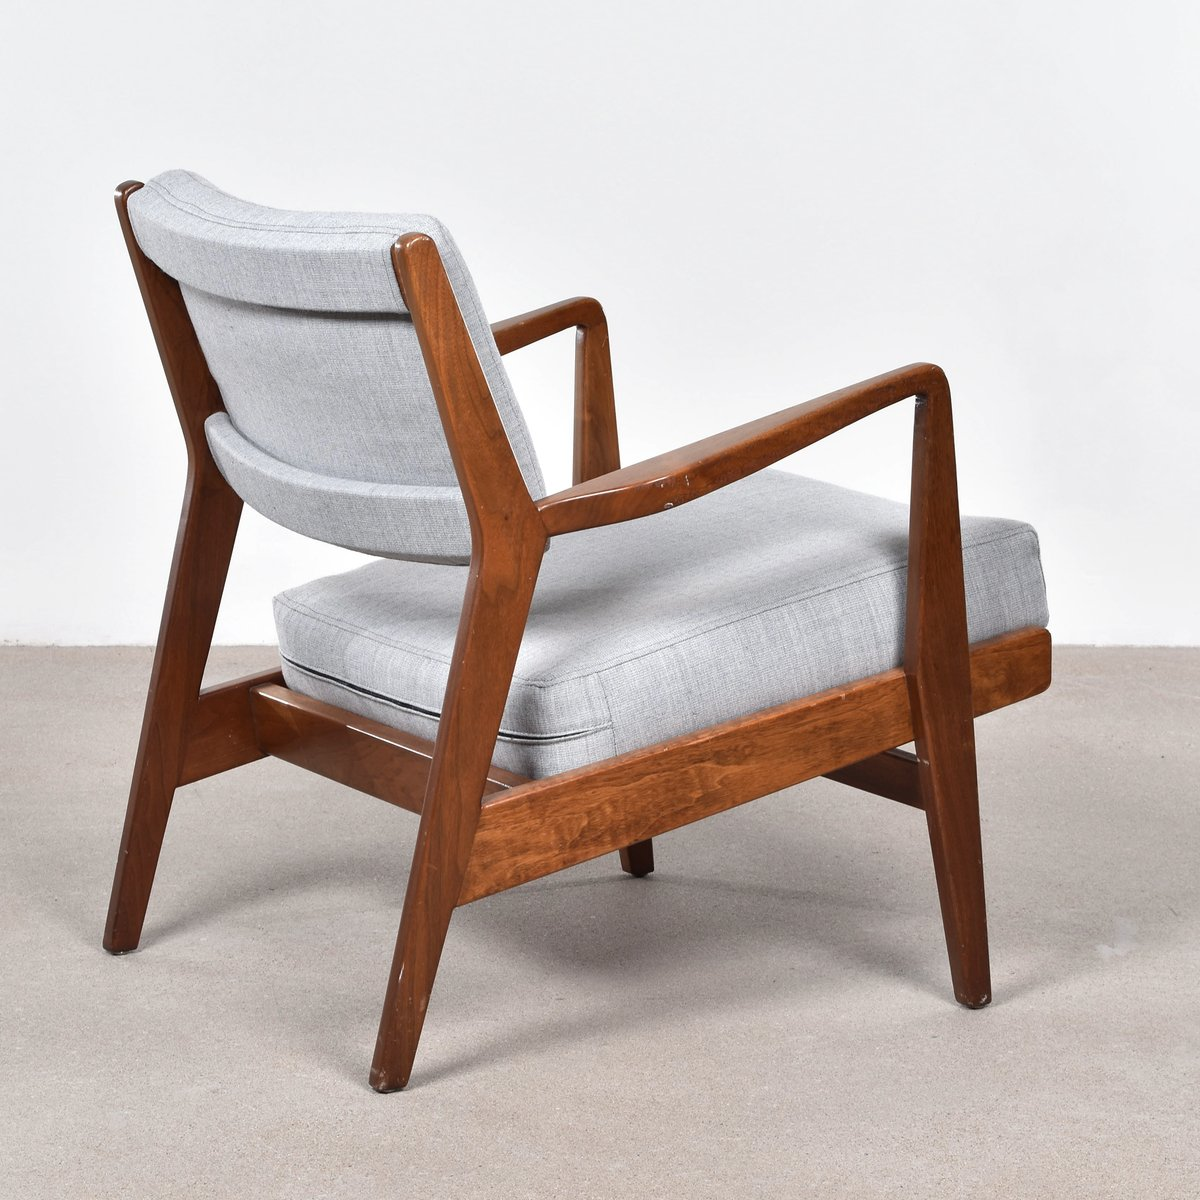 Jens Risom Side Chair U4230 Easy Chair By Jens Risom 1960s For Sale At Pamono